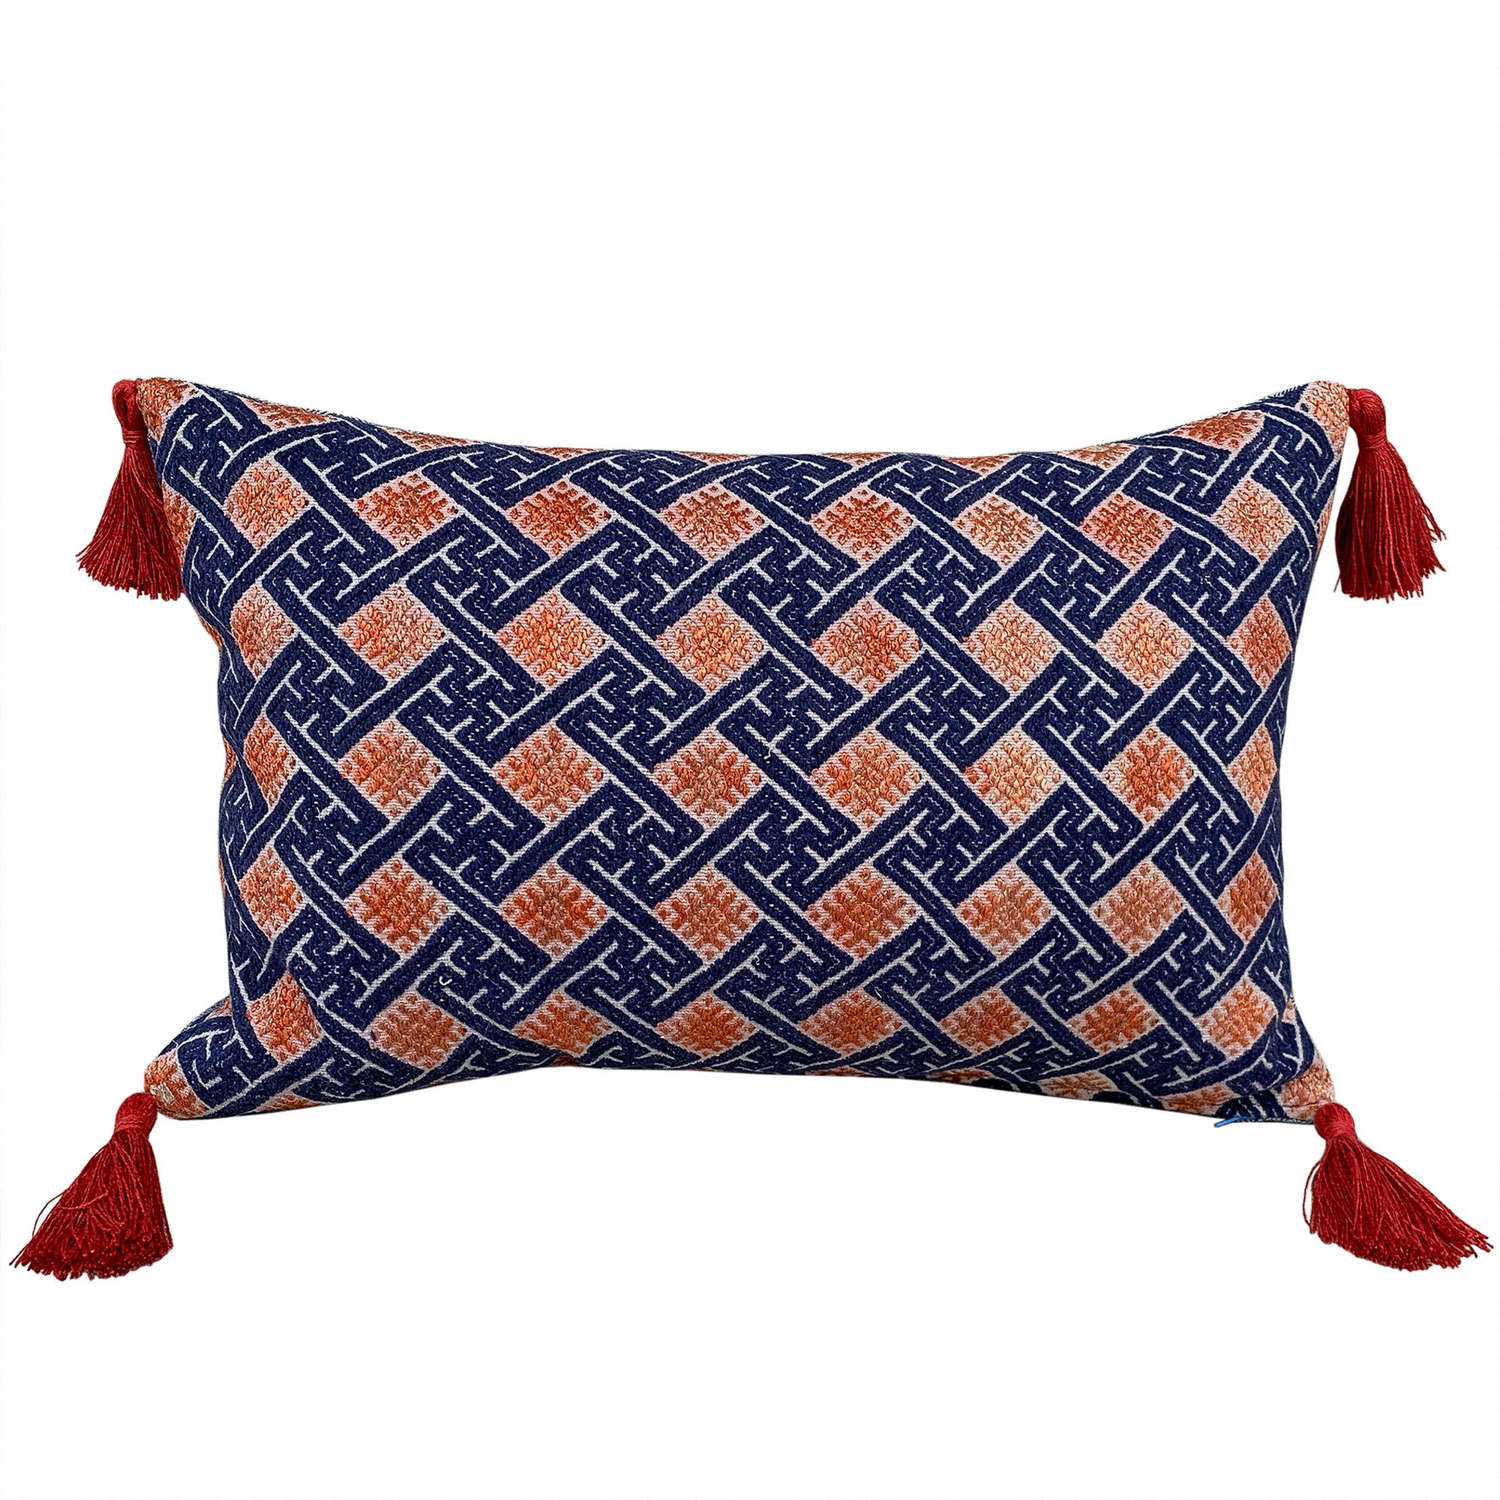 Indigo & Orange cushion with rust tassels